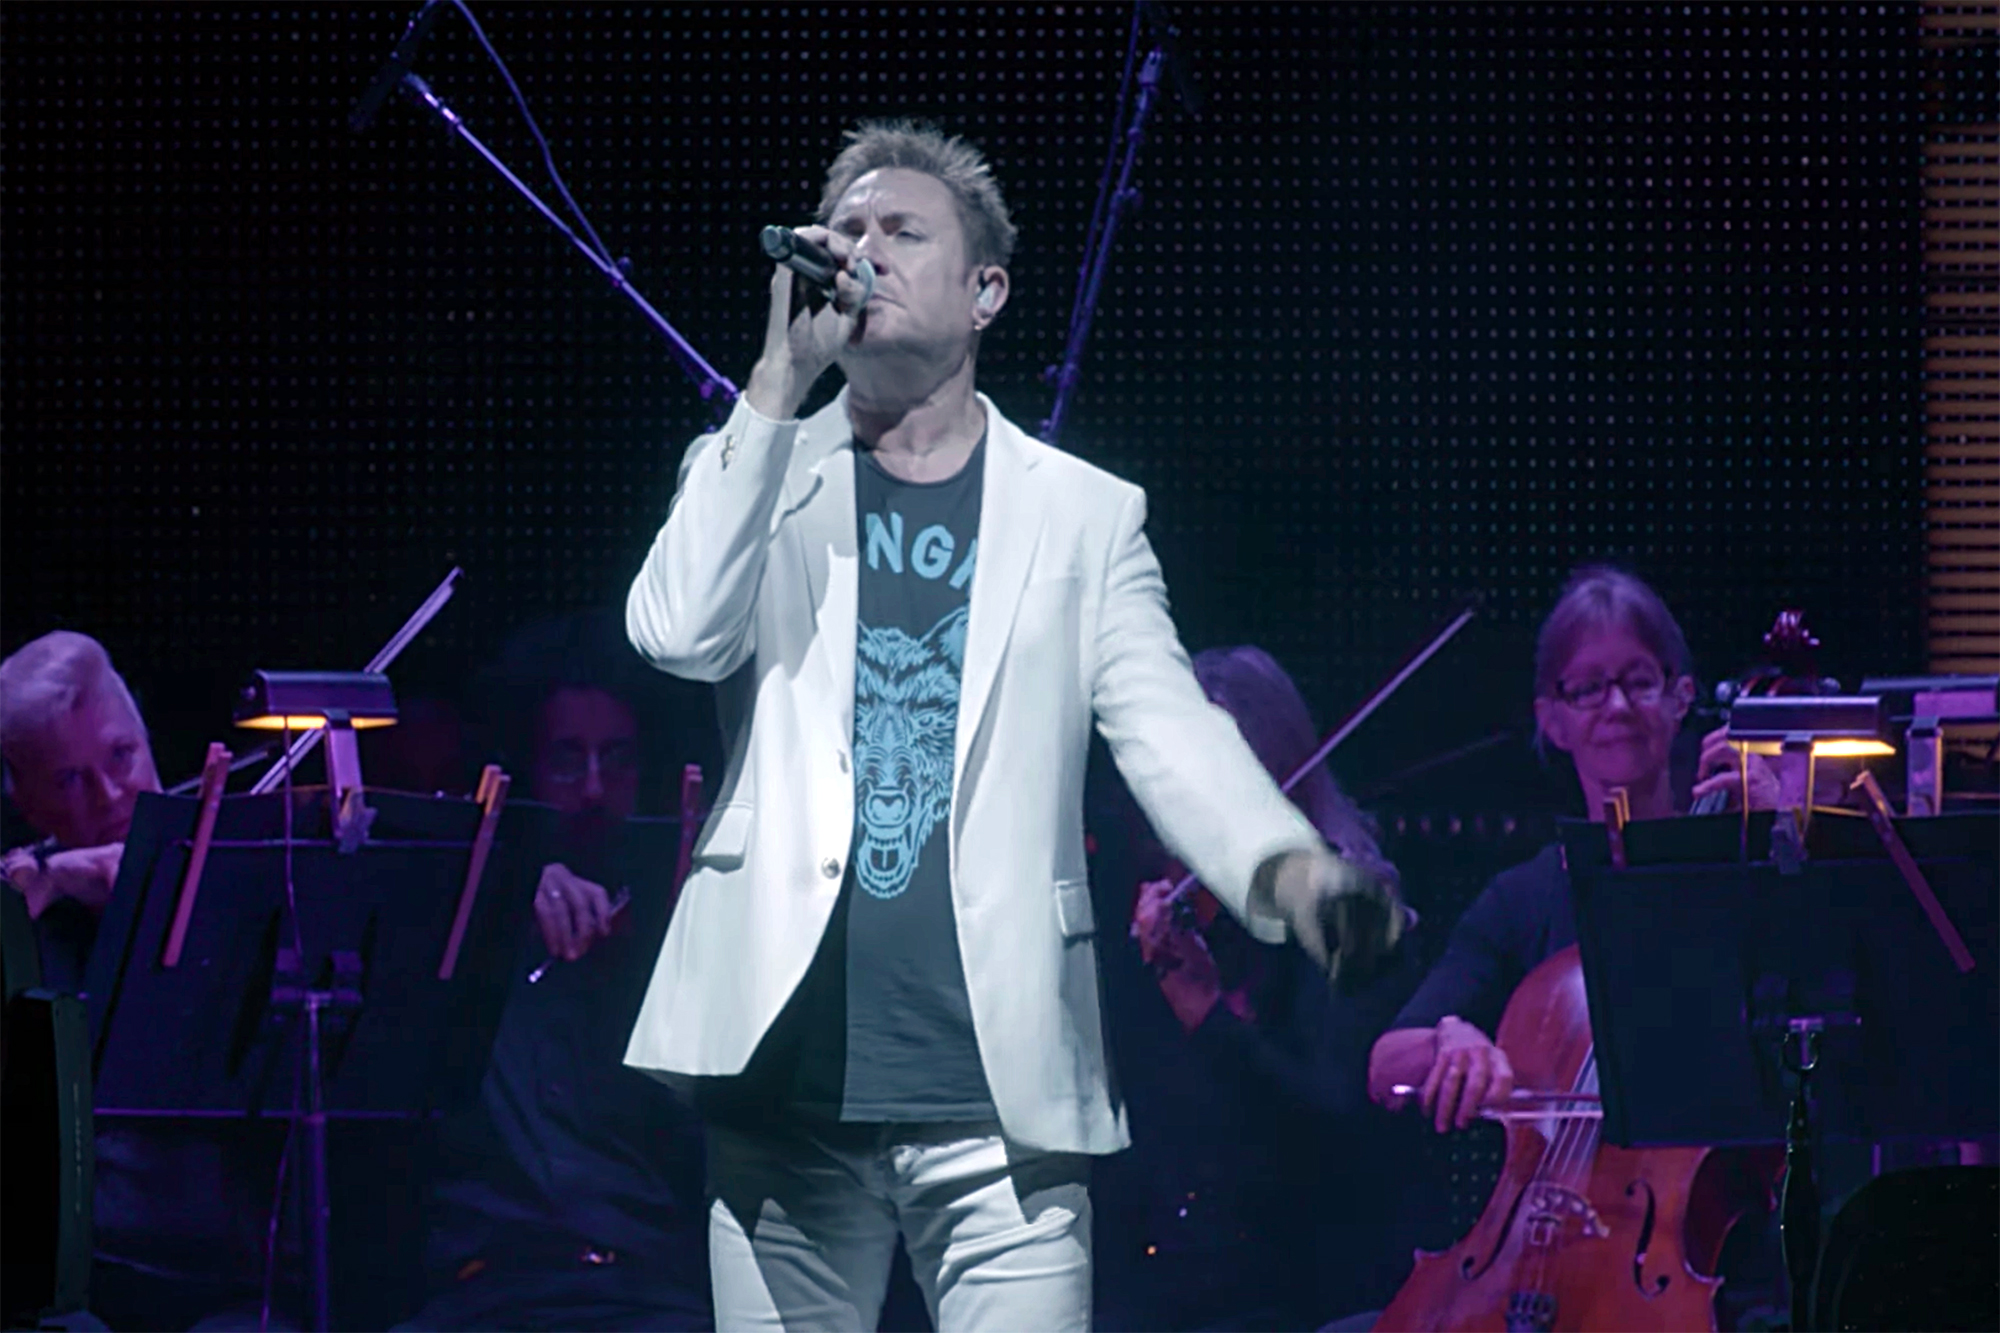 rollingstone.com - Kory Grow - See Duran Duran Pay Tribute to Apollo 11 Mission at Kennedy Space Center